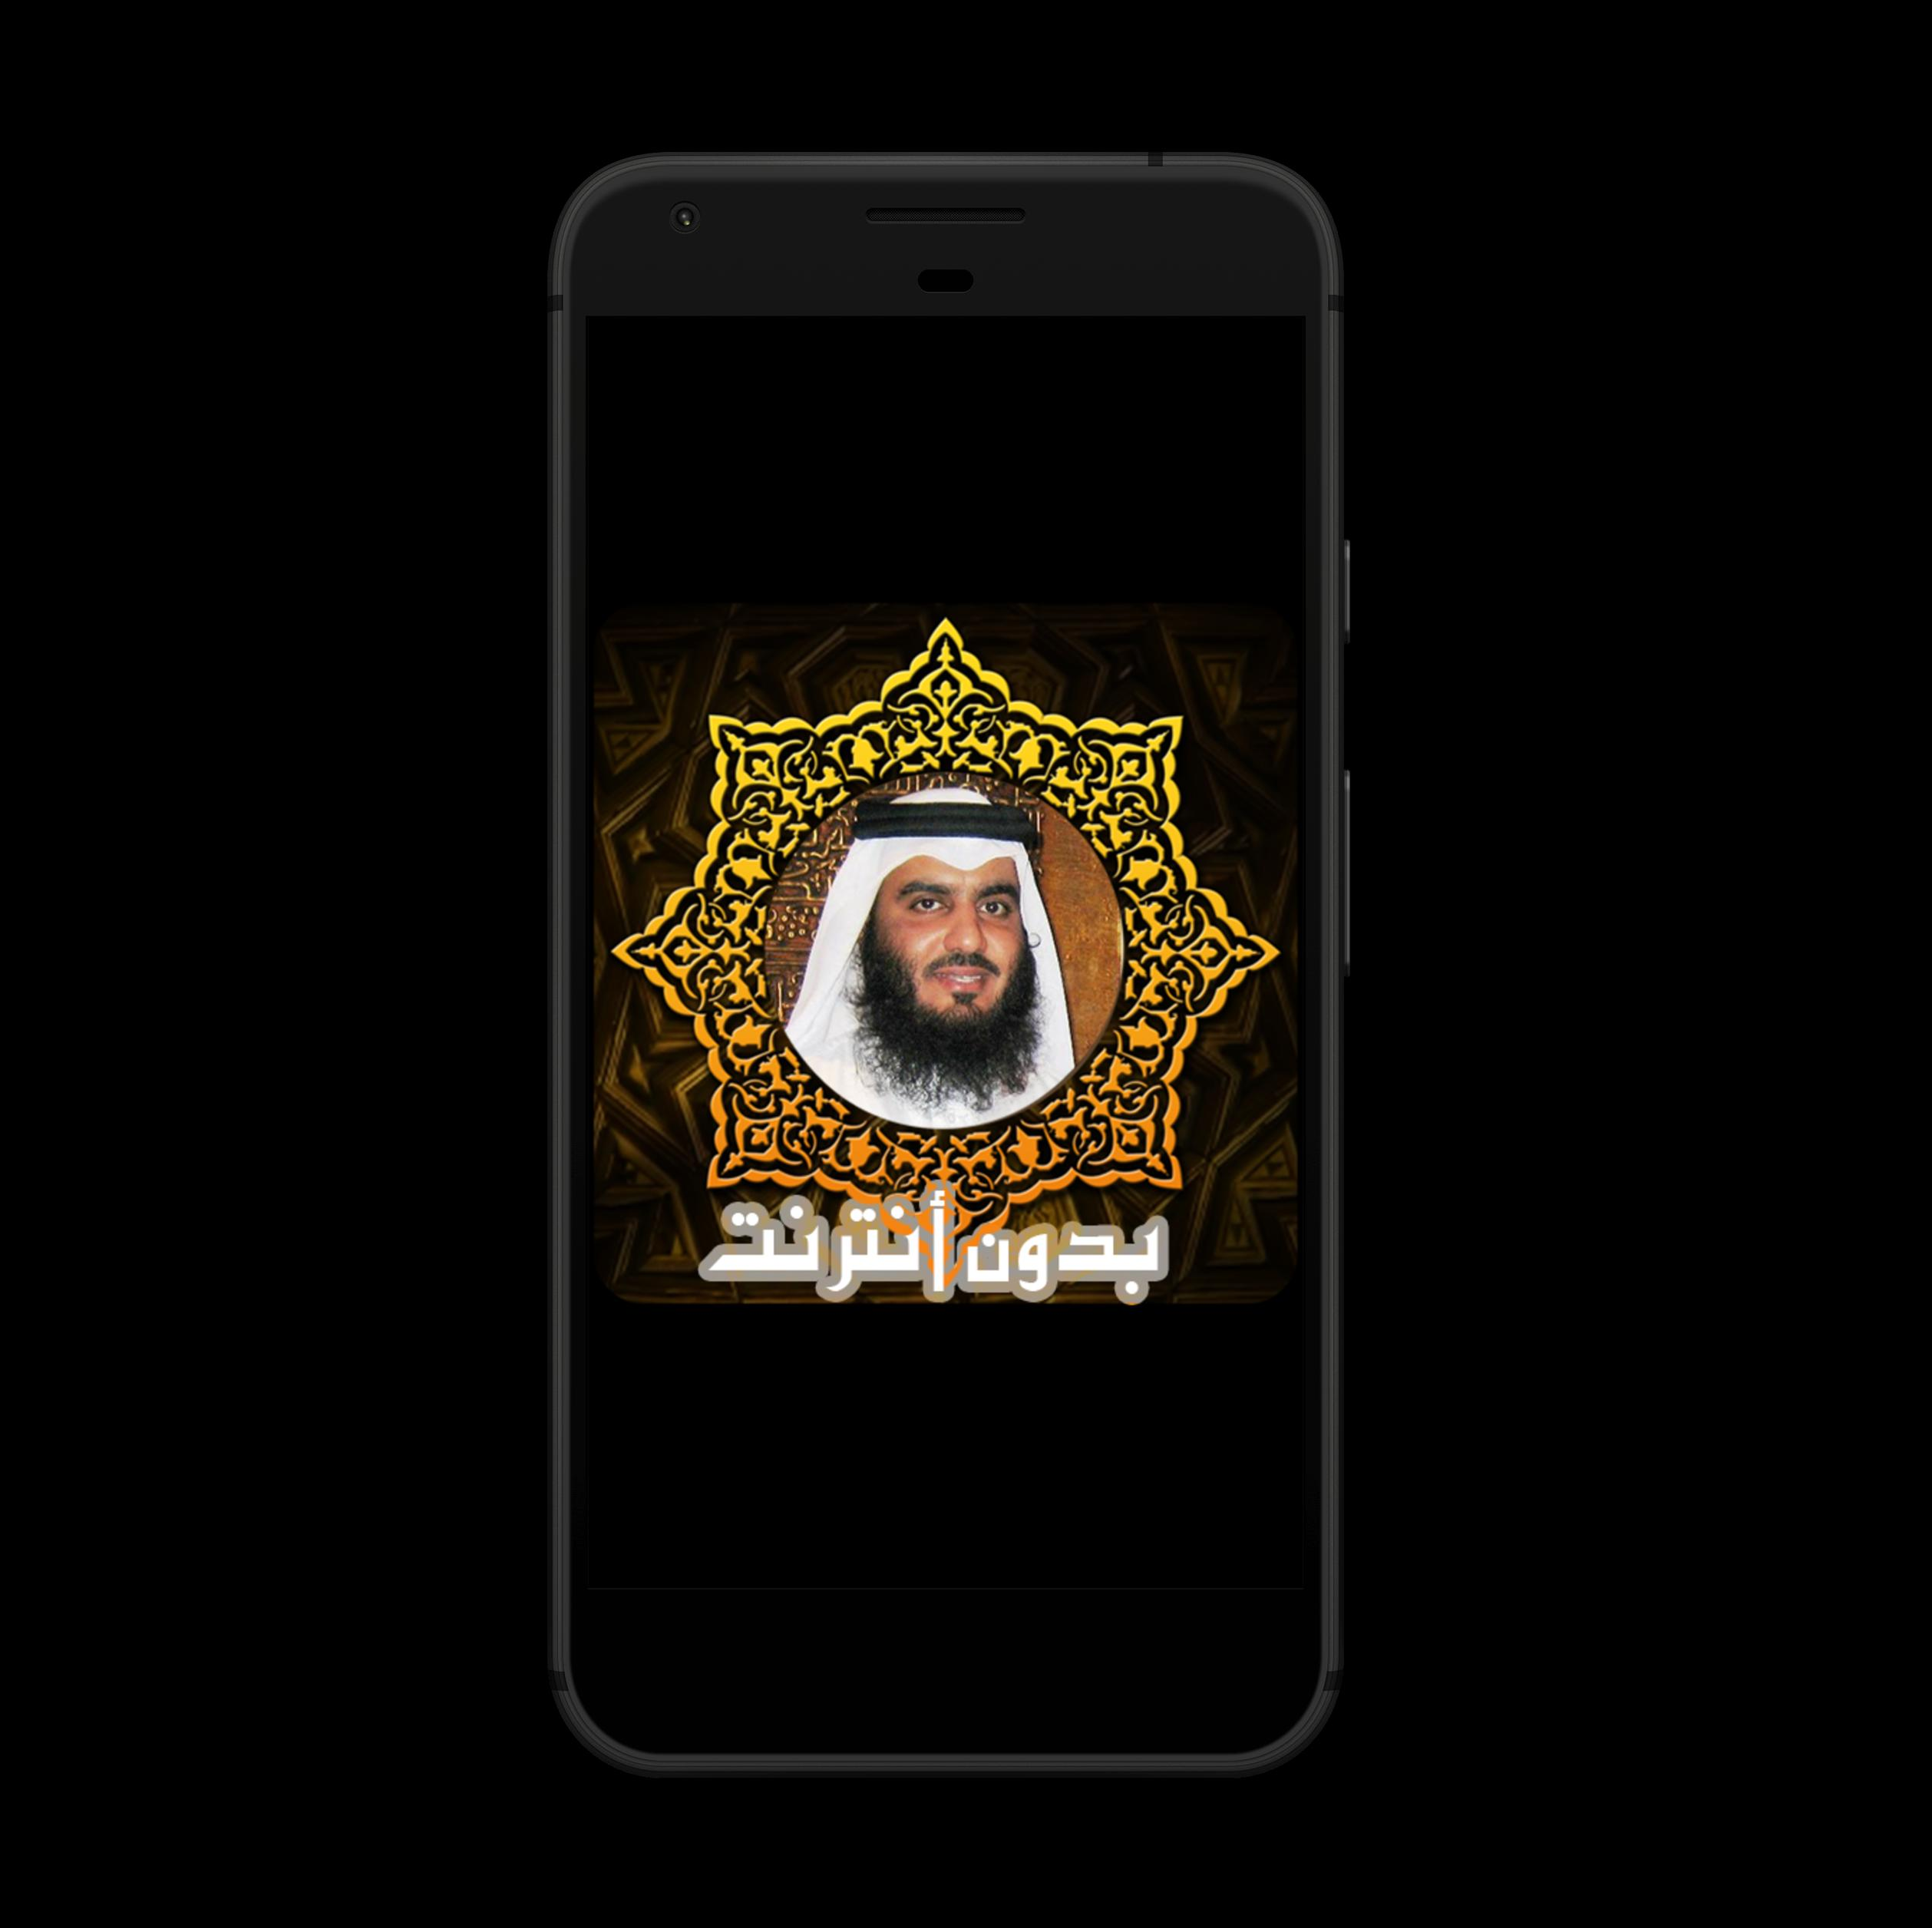 Ahmed Ajmi Quran karim Offline mp3 without net for Android